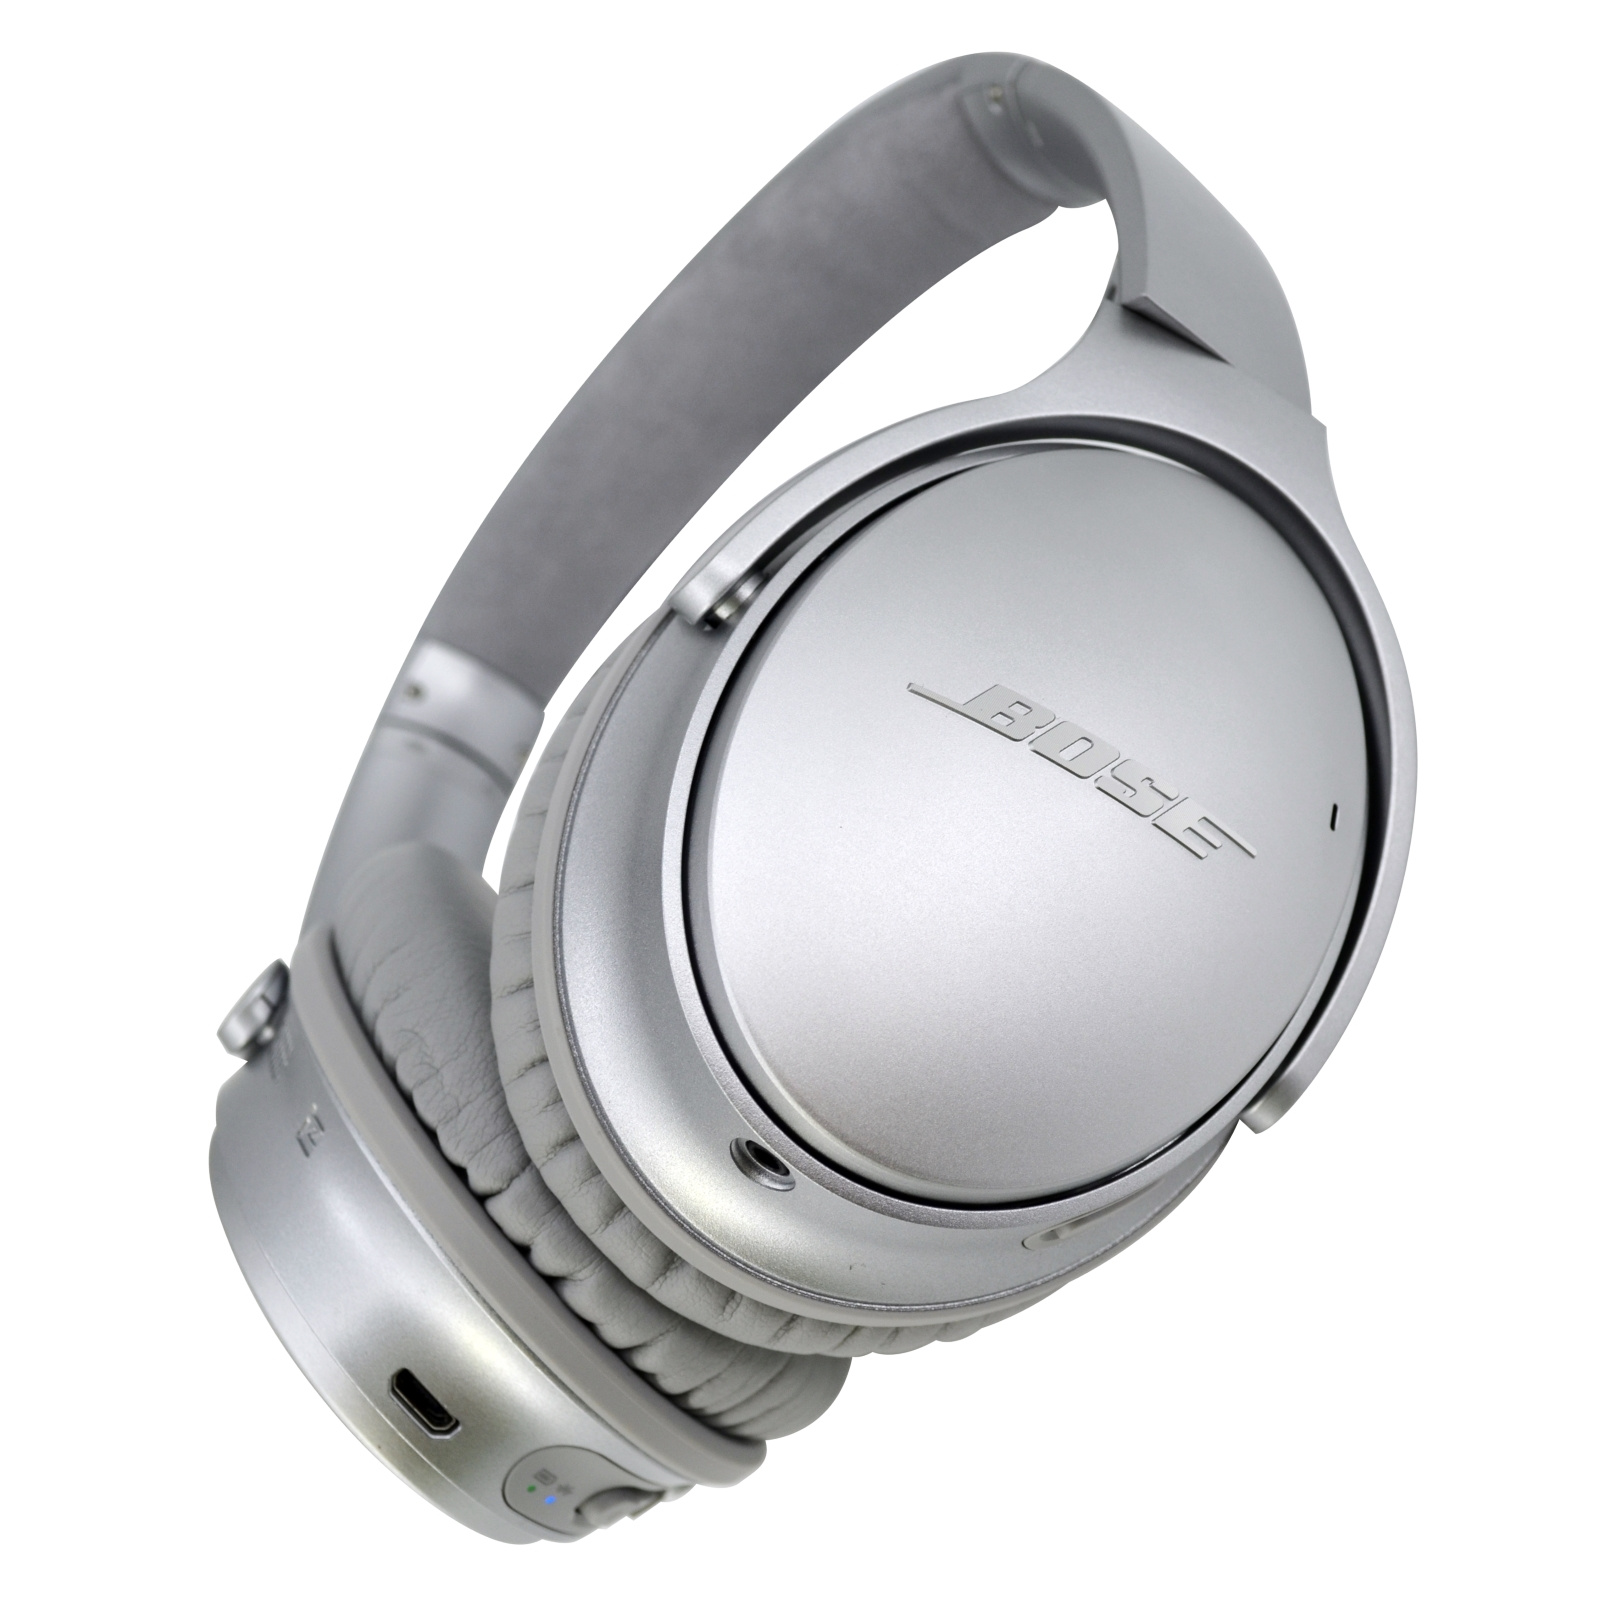 6360e04abec Bose QuietComfort QC35-II Wireless Noise Cancelling Over-Ear Headphones -  Silver - with Google Assistant & Amazon Alexa integration - the most  comfortable ...